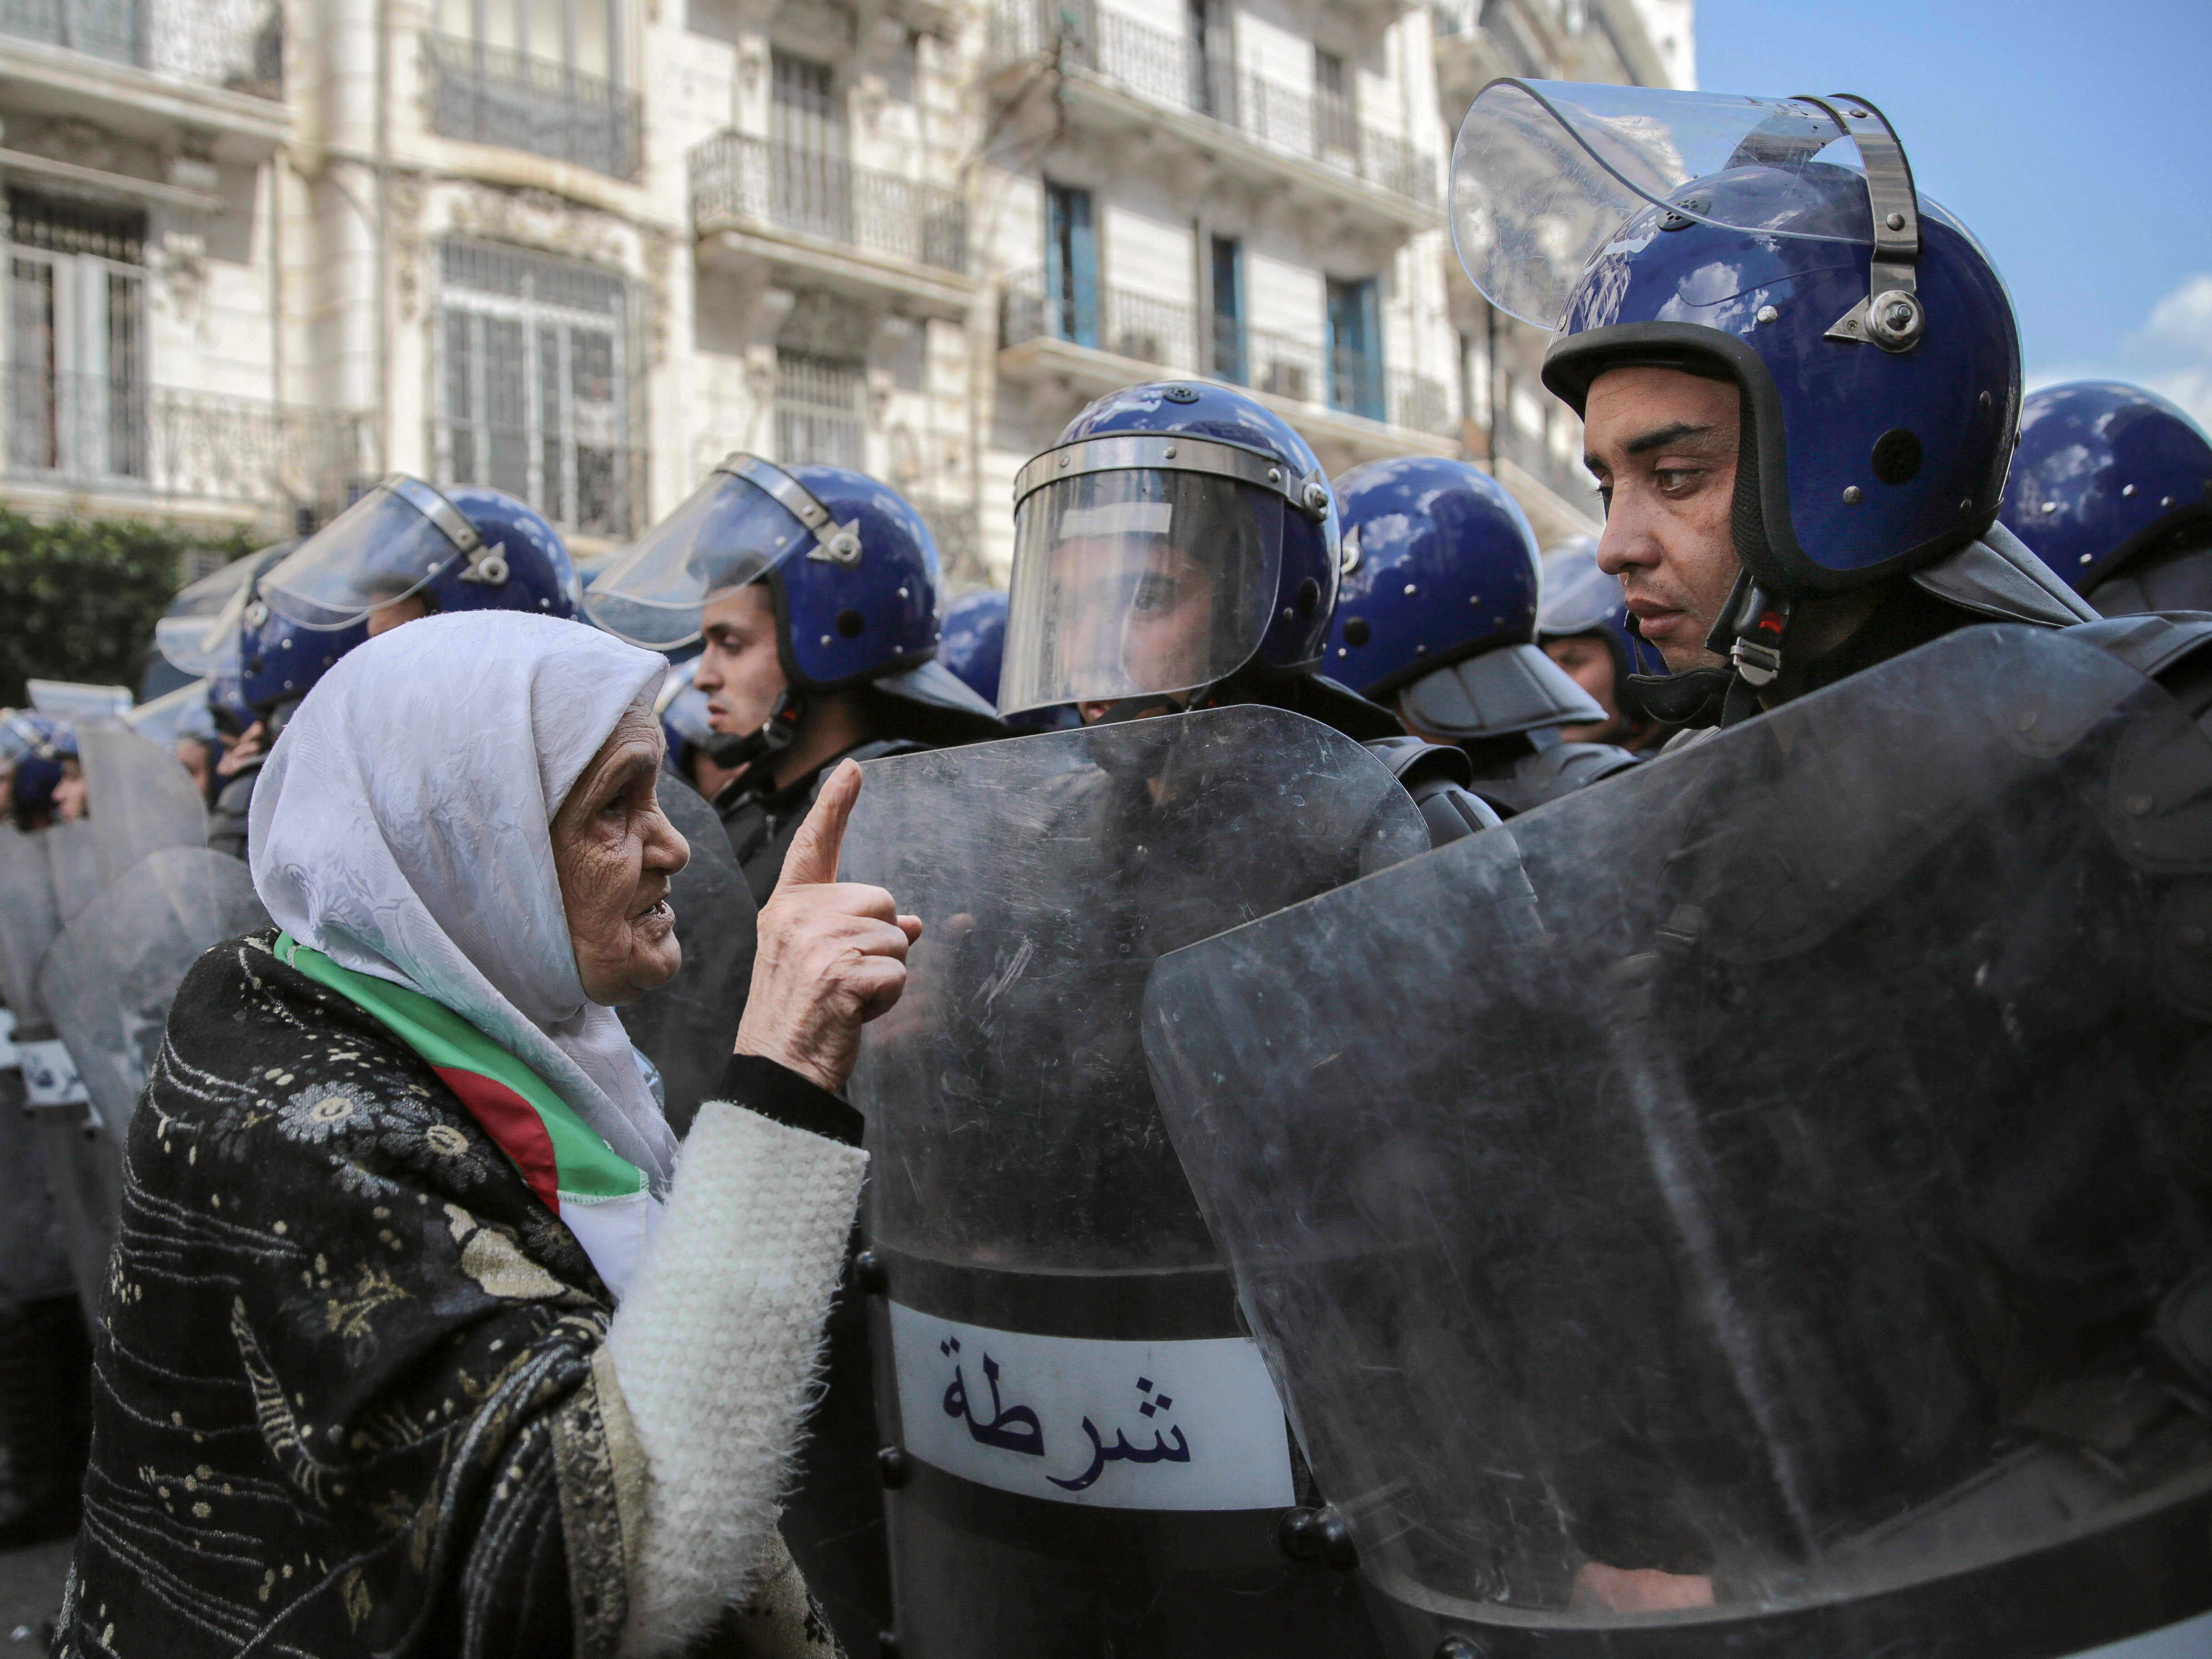 """An elderly woman confronts security forces during a demonstration in Algiers, Wednesday, April 10, 2019. The Algerian senator Abdelkader Bensalah, named to temporarily fill the office vacated by former President Abdelaziz Bouteflika, said he would act quickly to arrange an """"honest and transparent"""" election to usher in an """"Algeria of the future."""""""